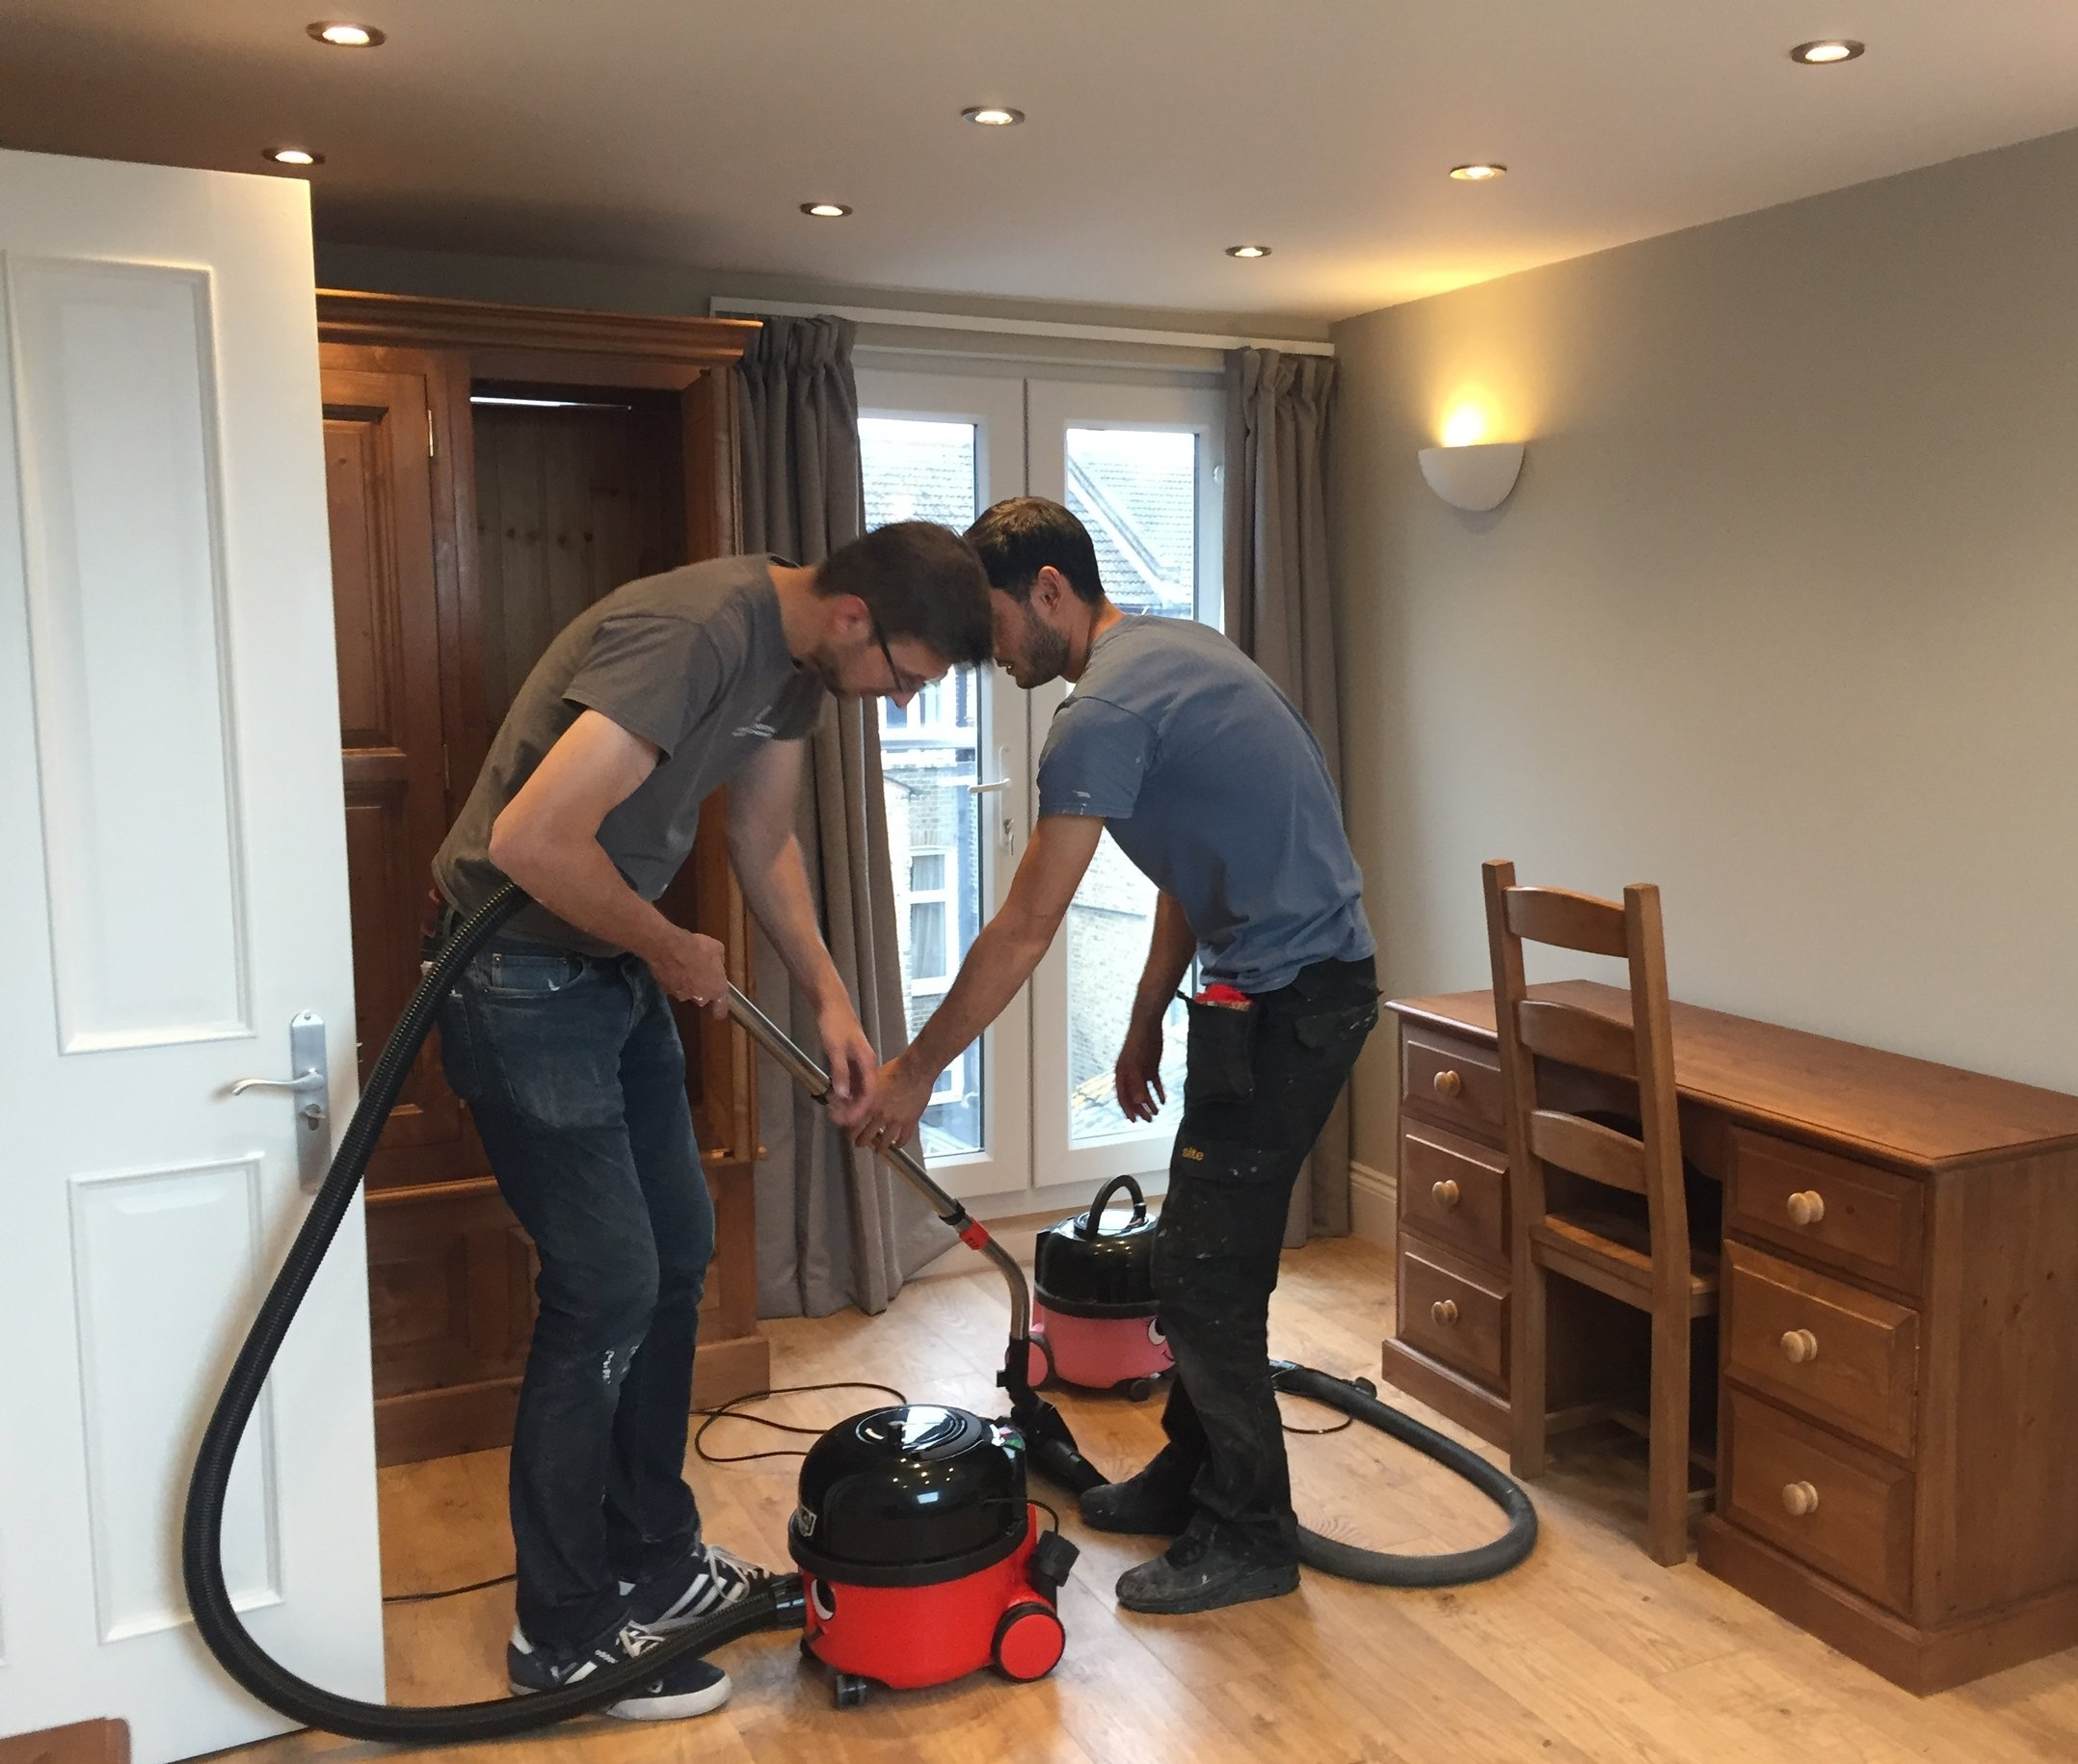 Matt and Atila readying a room for a new tenant